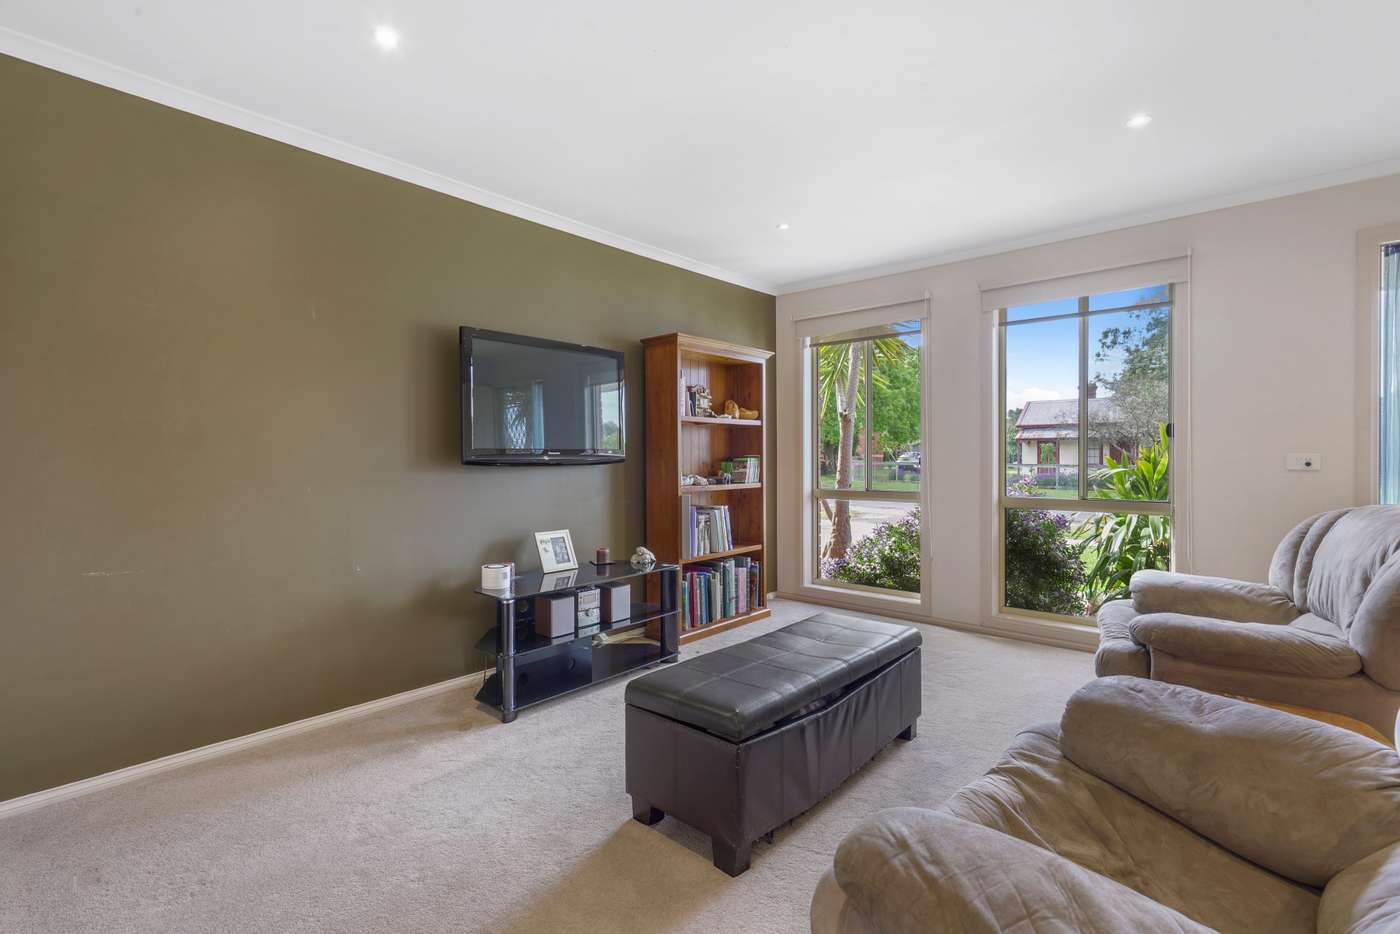 Fifth view of Homely house listing, 9 Stawell Street, Romsey VIC 3434